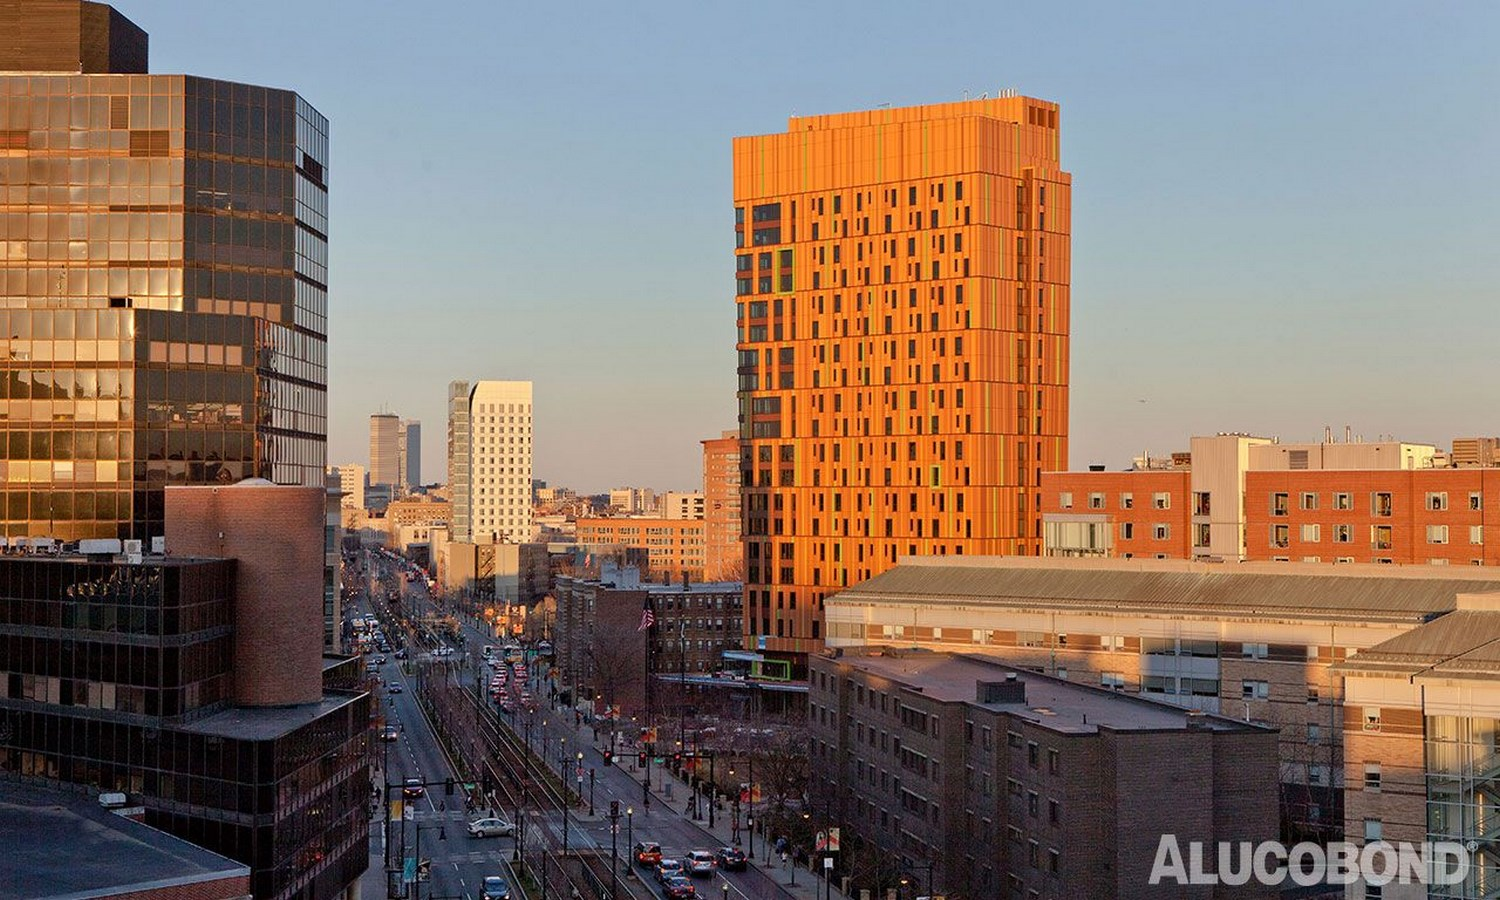 25 Most Iconic Structures In Boston - MASSACHUSETTS COLLEGE OF ART AND DESIGN'S STUDENT RESIDENCE HALL - Sheet1